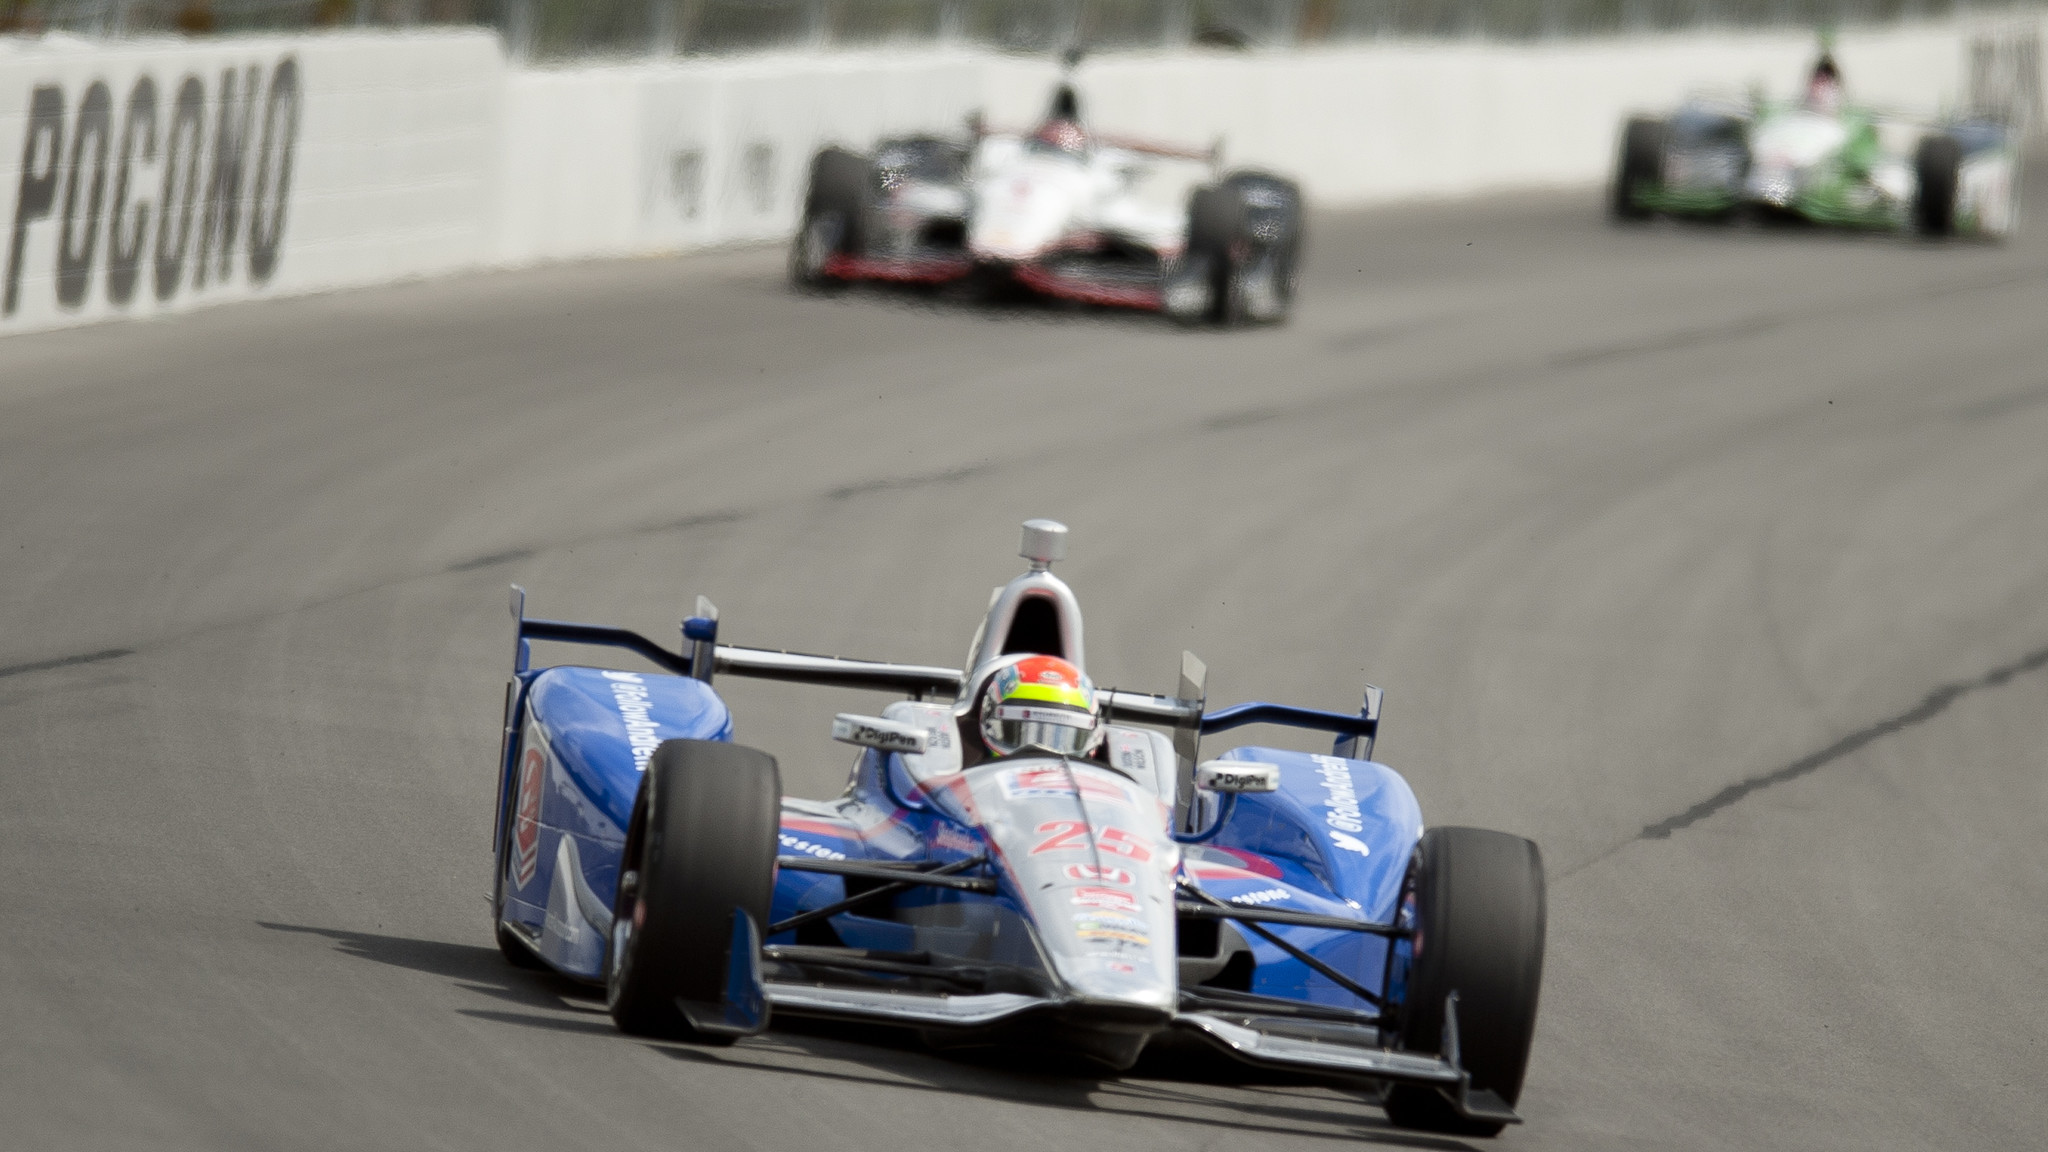 AUTO RACING IndyCar and Pocono Raceway ink new 2 year deal The